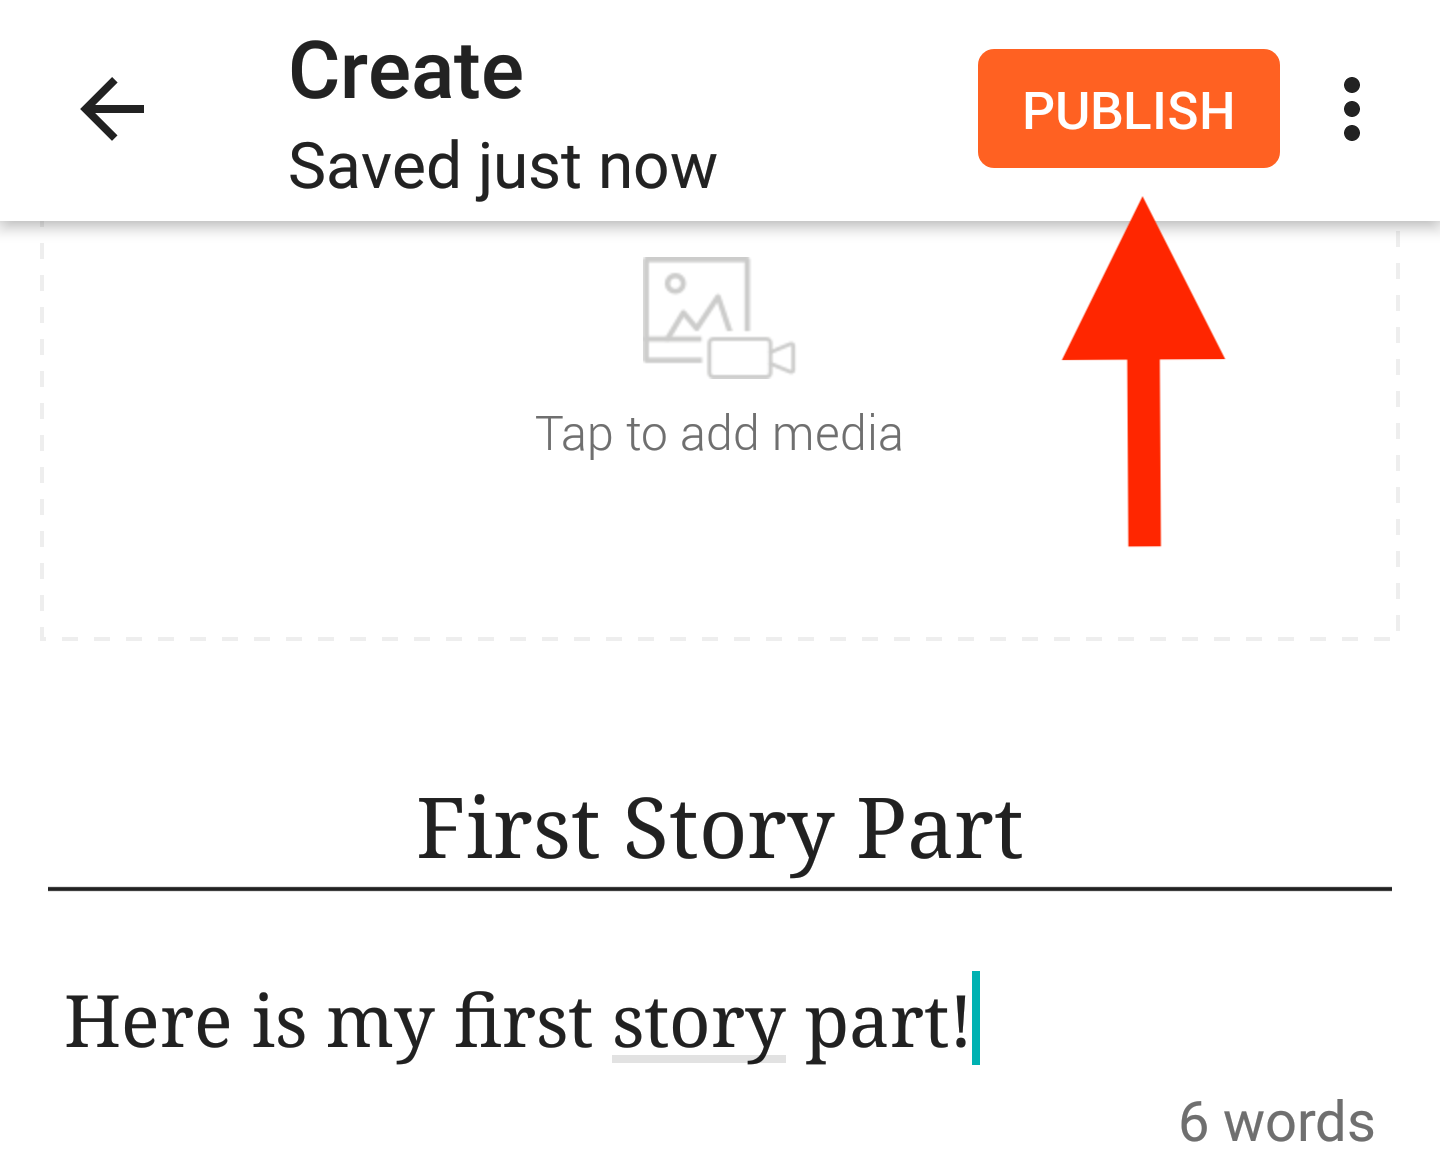 The story part open with an arrow pointing to the Publish button on Android